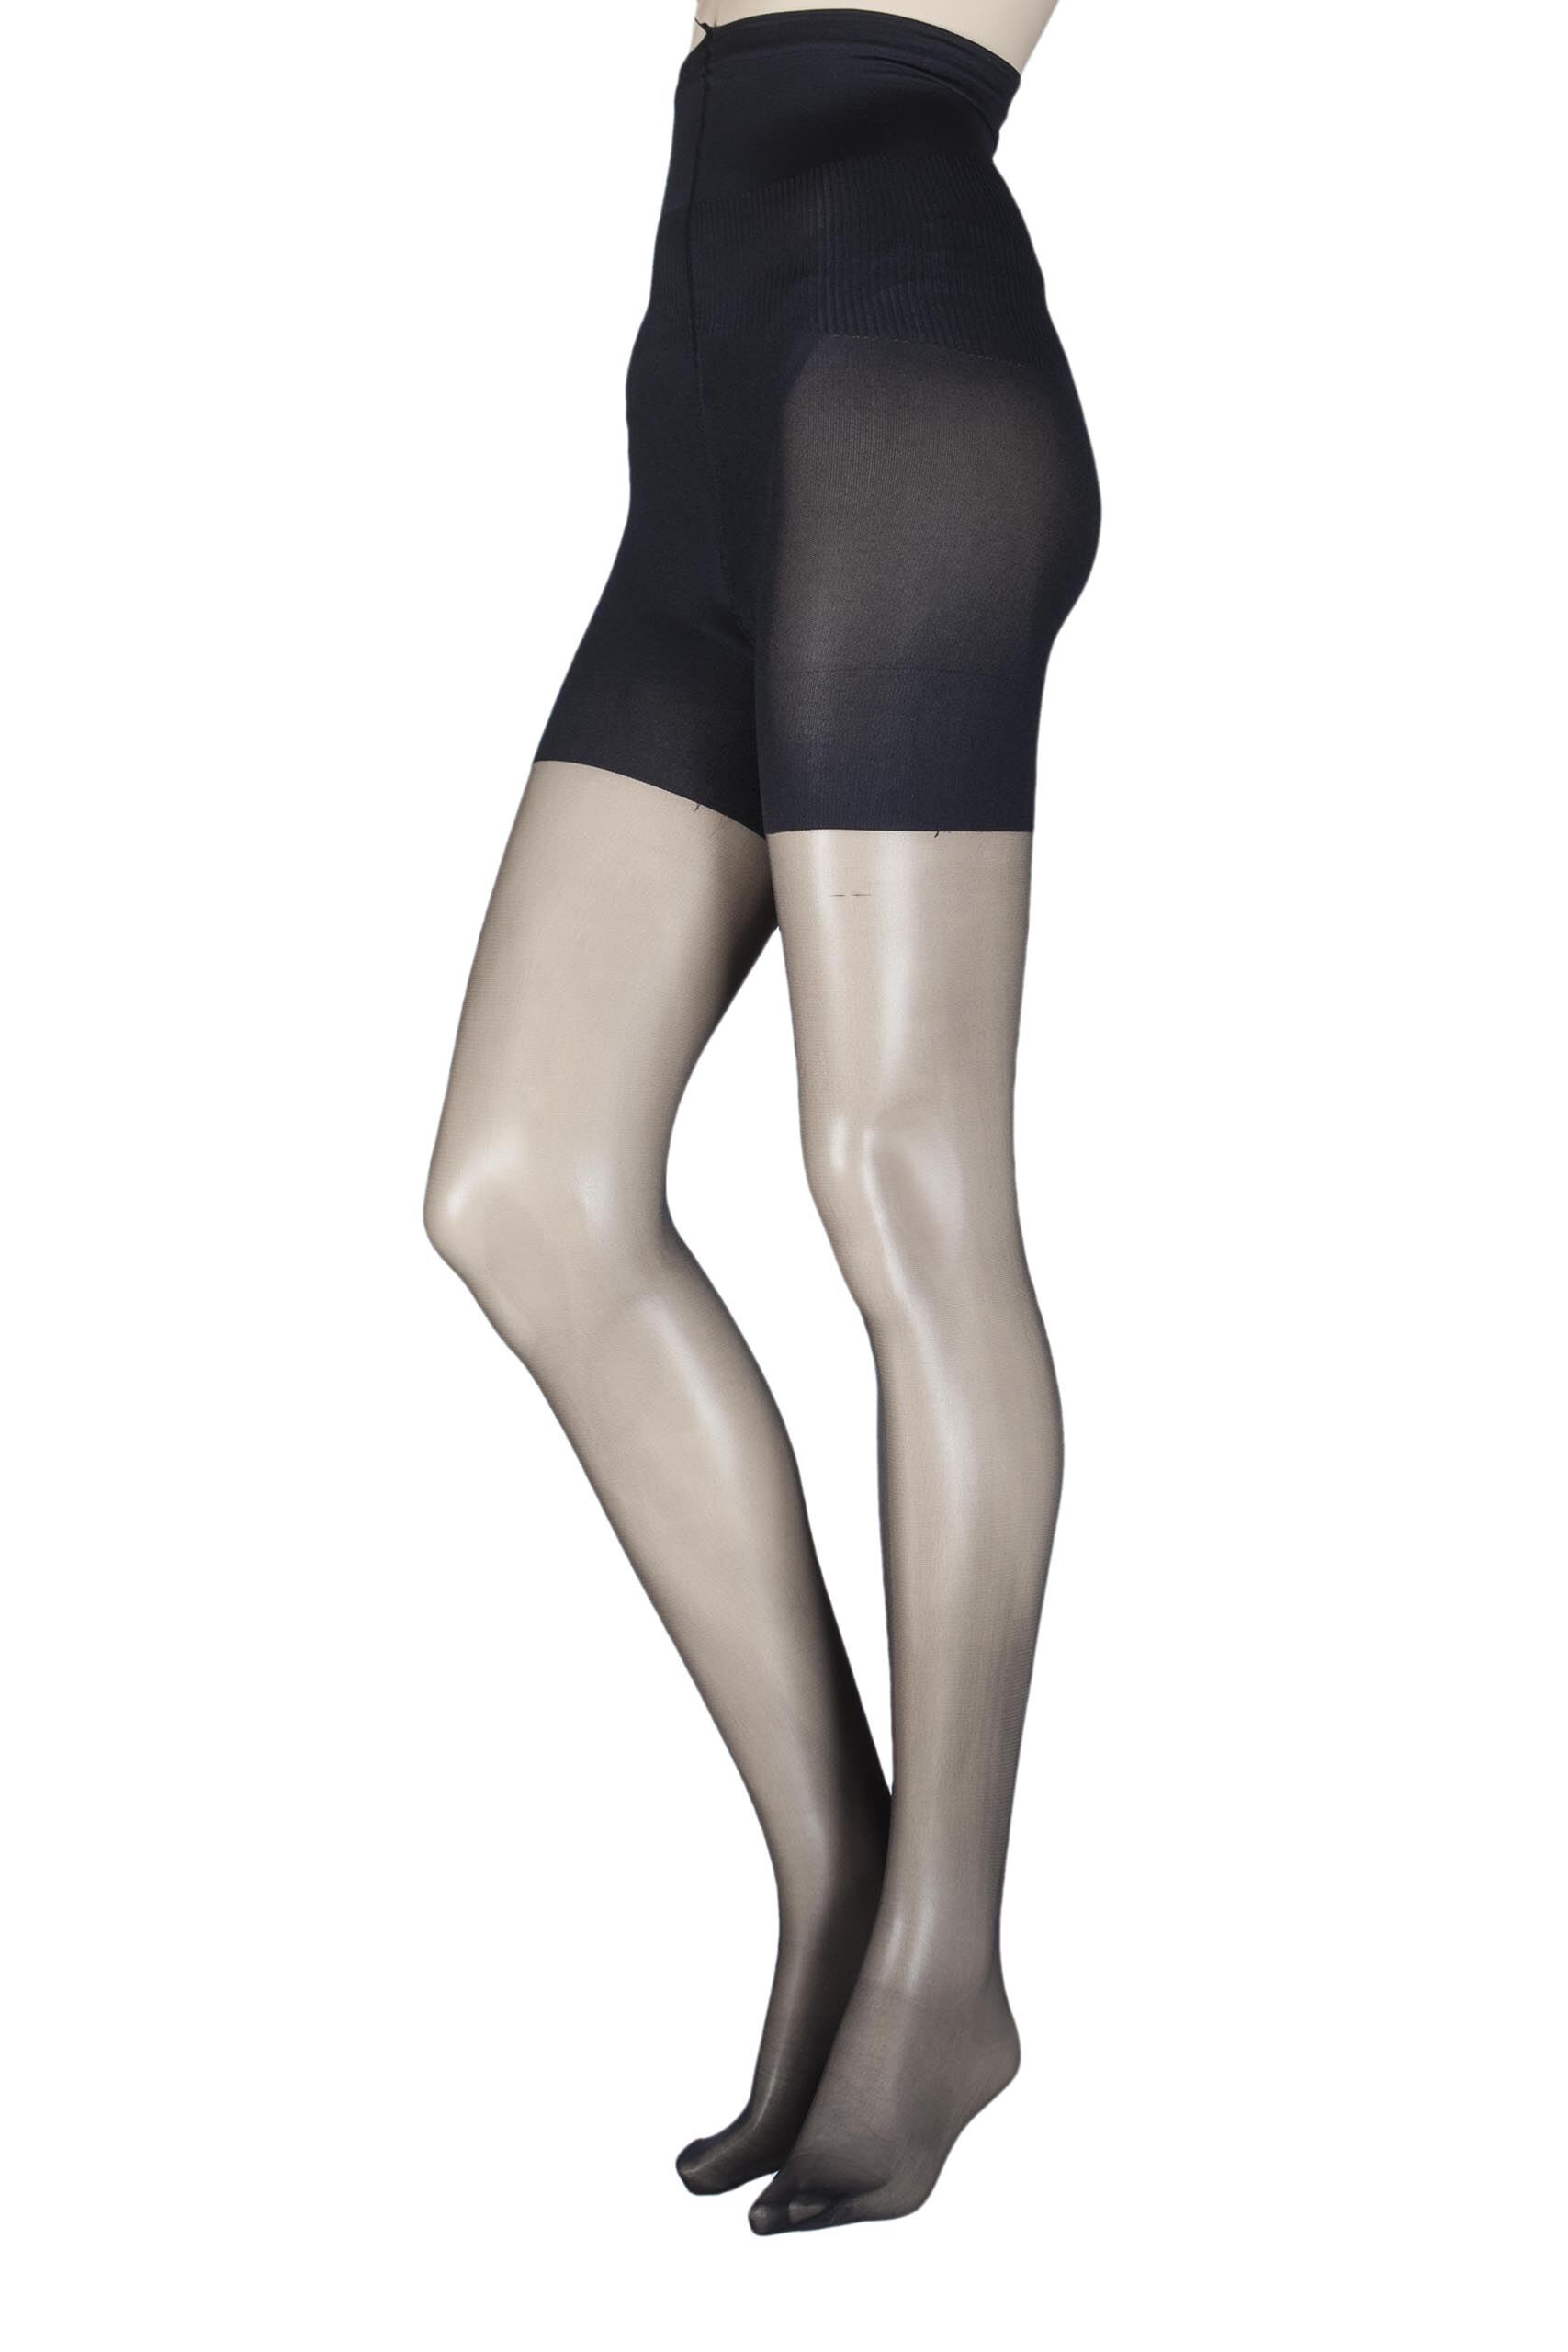 Image of 1 Pair Black 10 Denier Hourglass Toner Tights Ladies Small/Medium - Aristoc